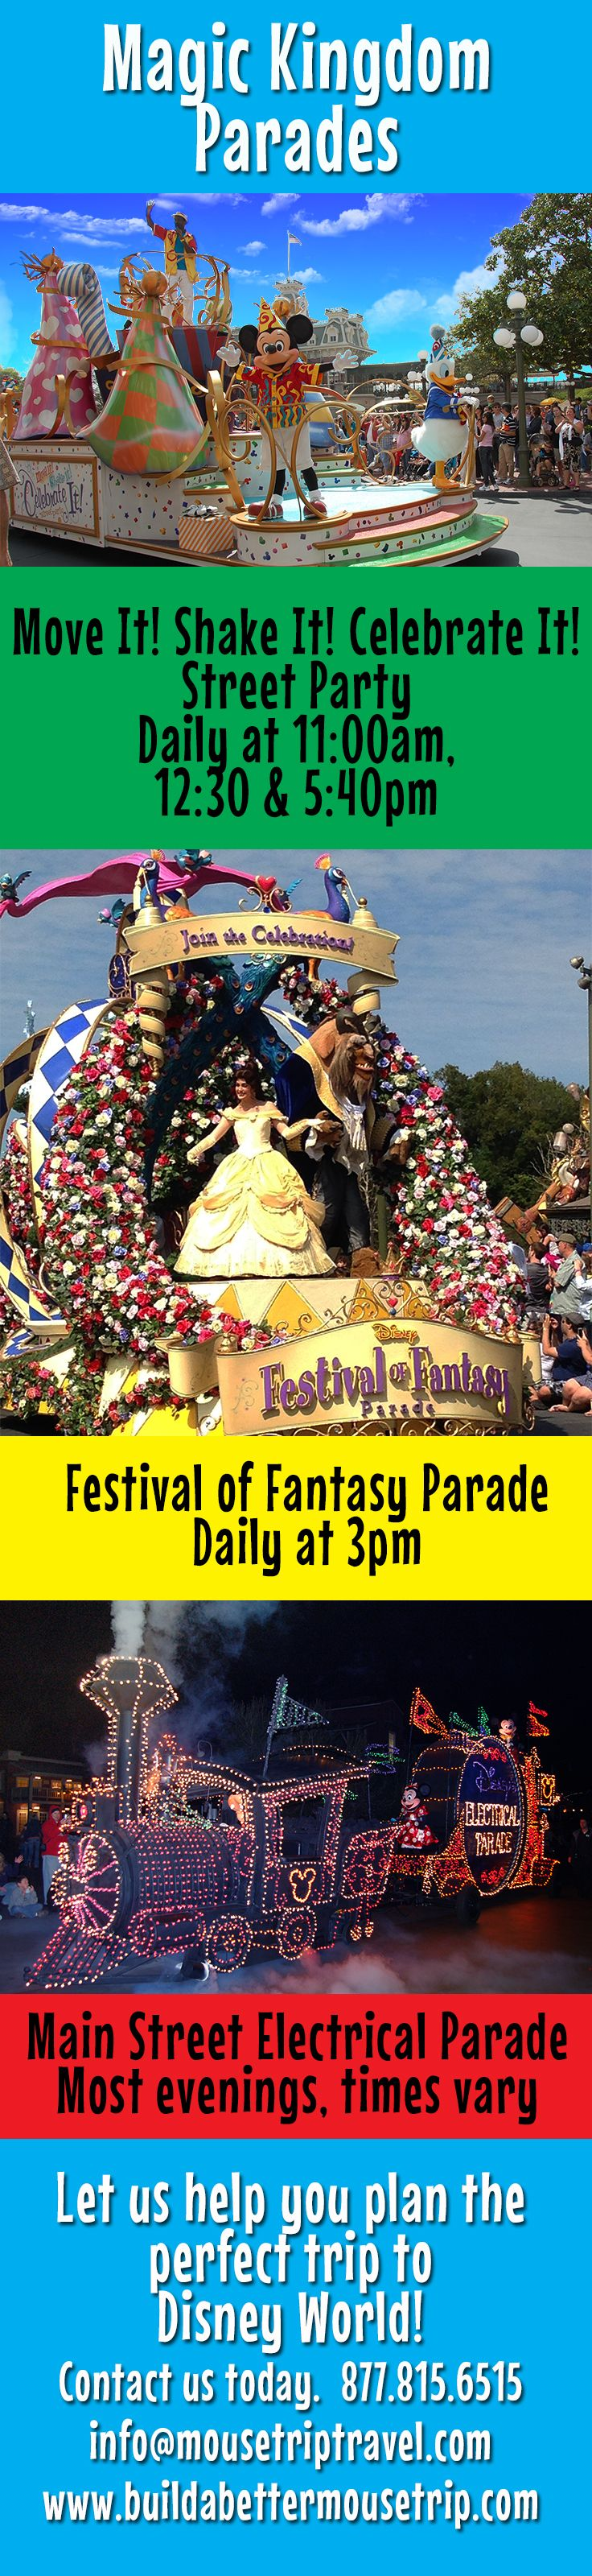 "Noted. Magic Kingdom Parade schedule - #Disney World.  Includes ""Move It!, Shake It! Celebrate It!"", Festival of Fantasy afternoon parade and the Main Street Electrical Parade.  Check Magic Kingdom Times Guide (found near the park maps) for exact schedule during your trip.   For Disney World ride closures, crowd warnings, and special event information, see: http://www.buildabettermousetrip.com/monthly-newsletters.php #Disneyworld #MagicKingdom #FestivalofFantasy #WDW"